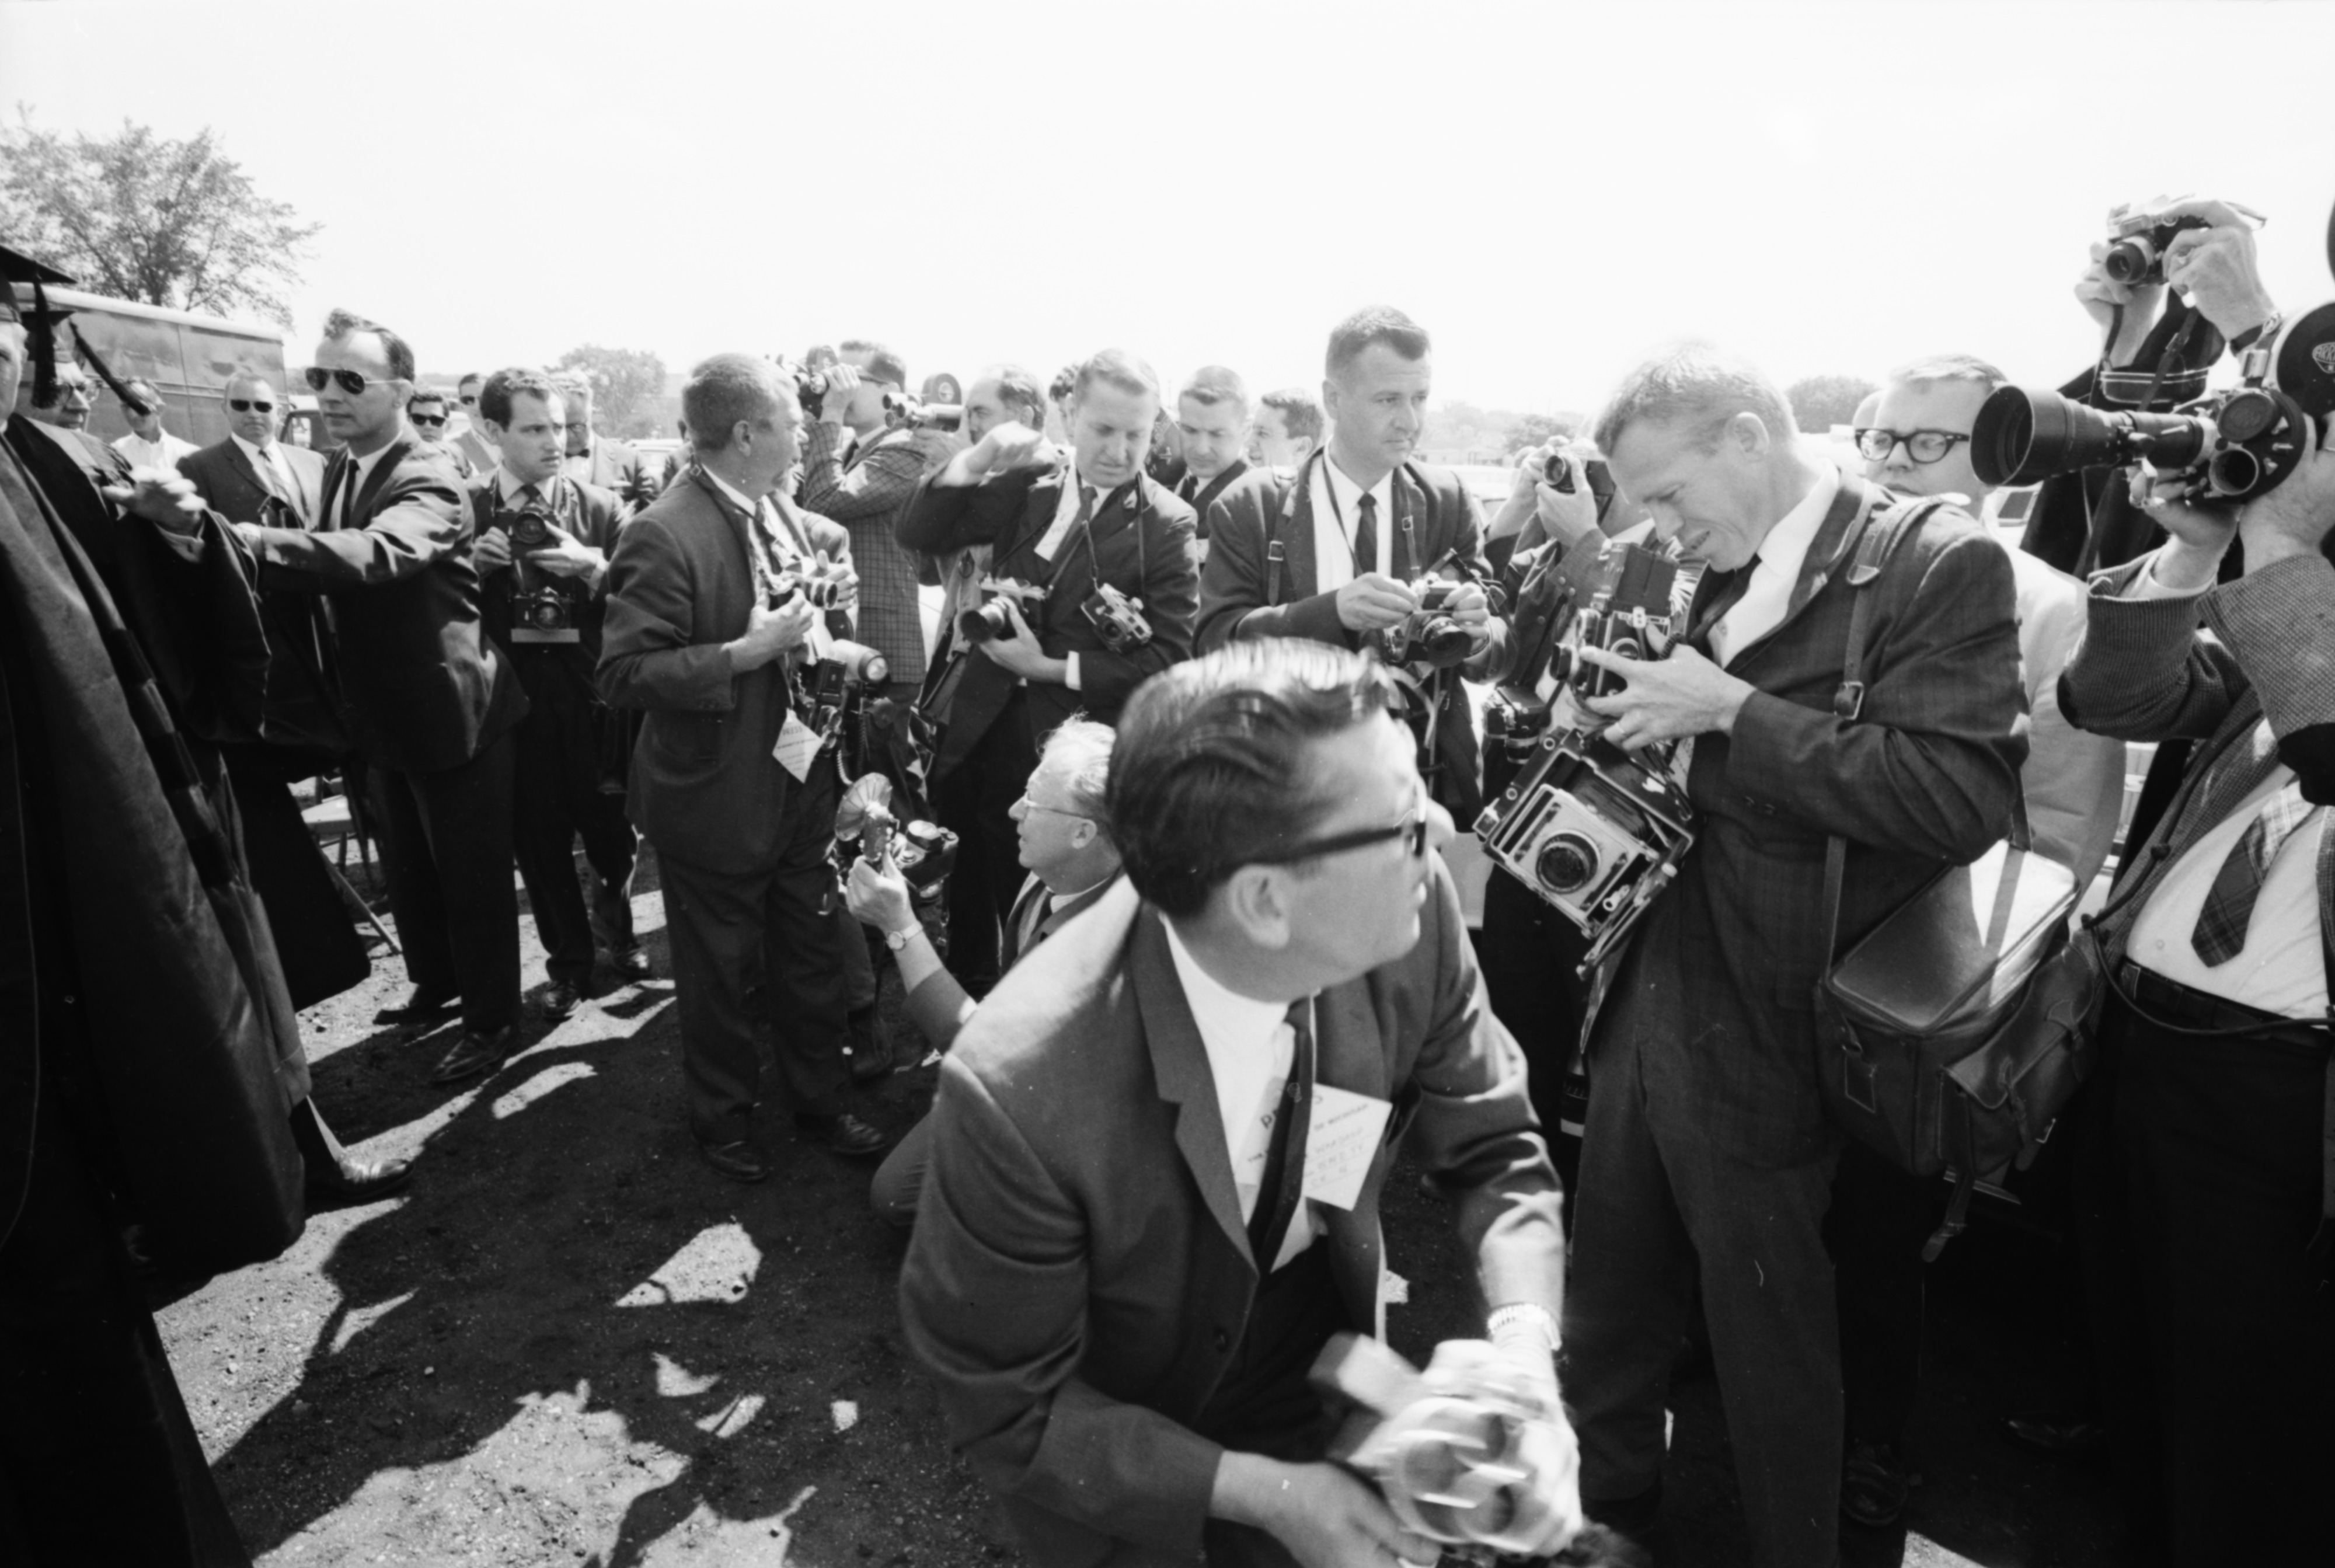 Photographers at the Convocation honoring Astronauts James A. McDivitt and Edward H. White II, June 1965 image